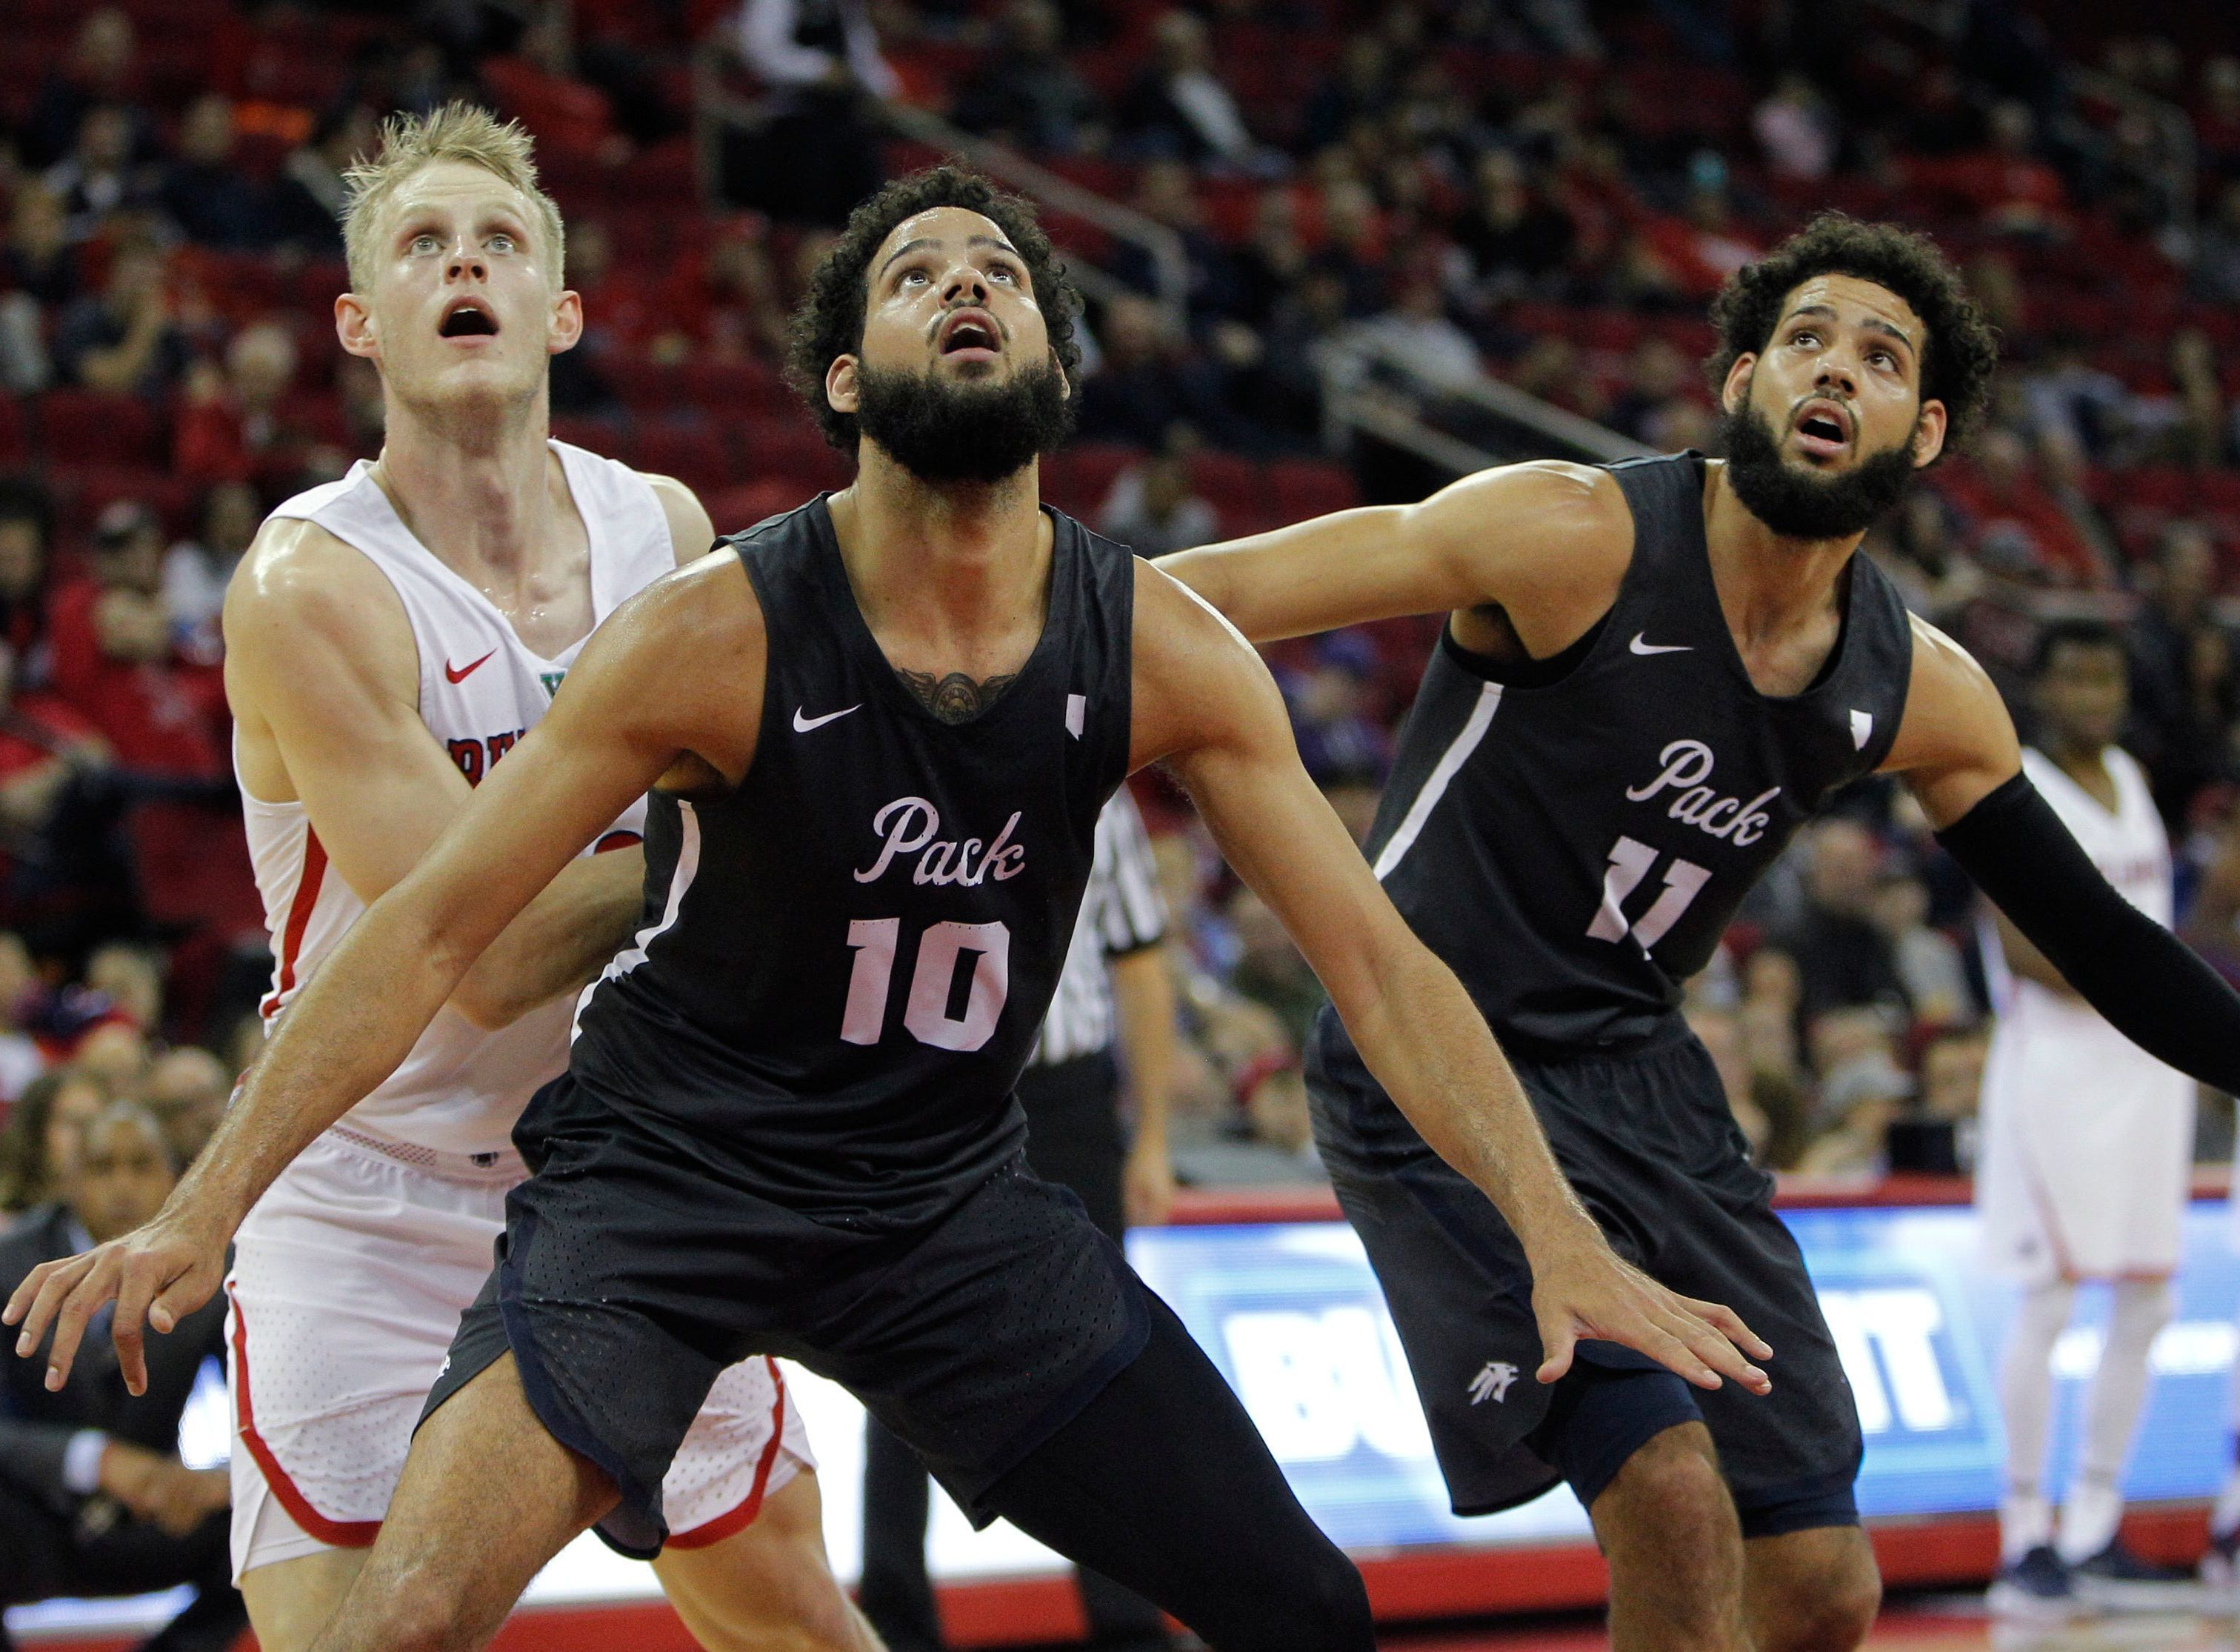 Nevada's Caleb Martin, left, and Cody Martin box out for a rebound against Fresno State's Sam Bittner.